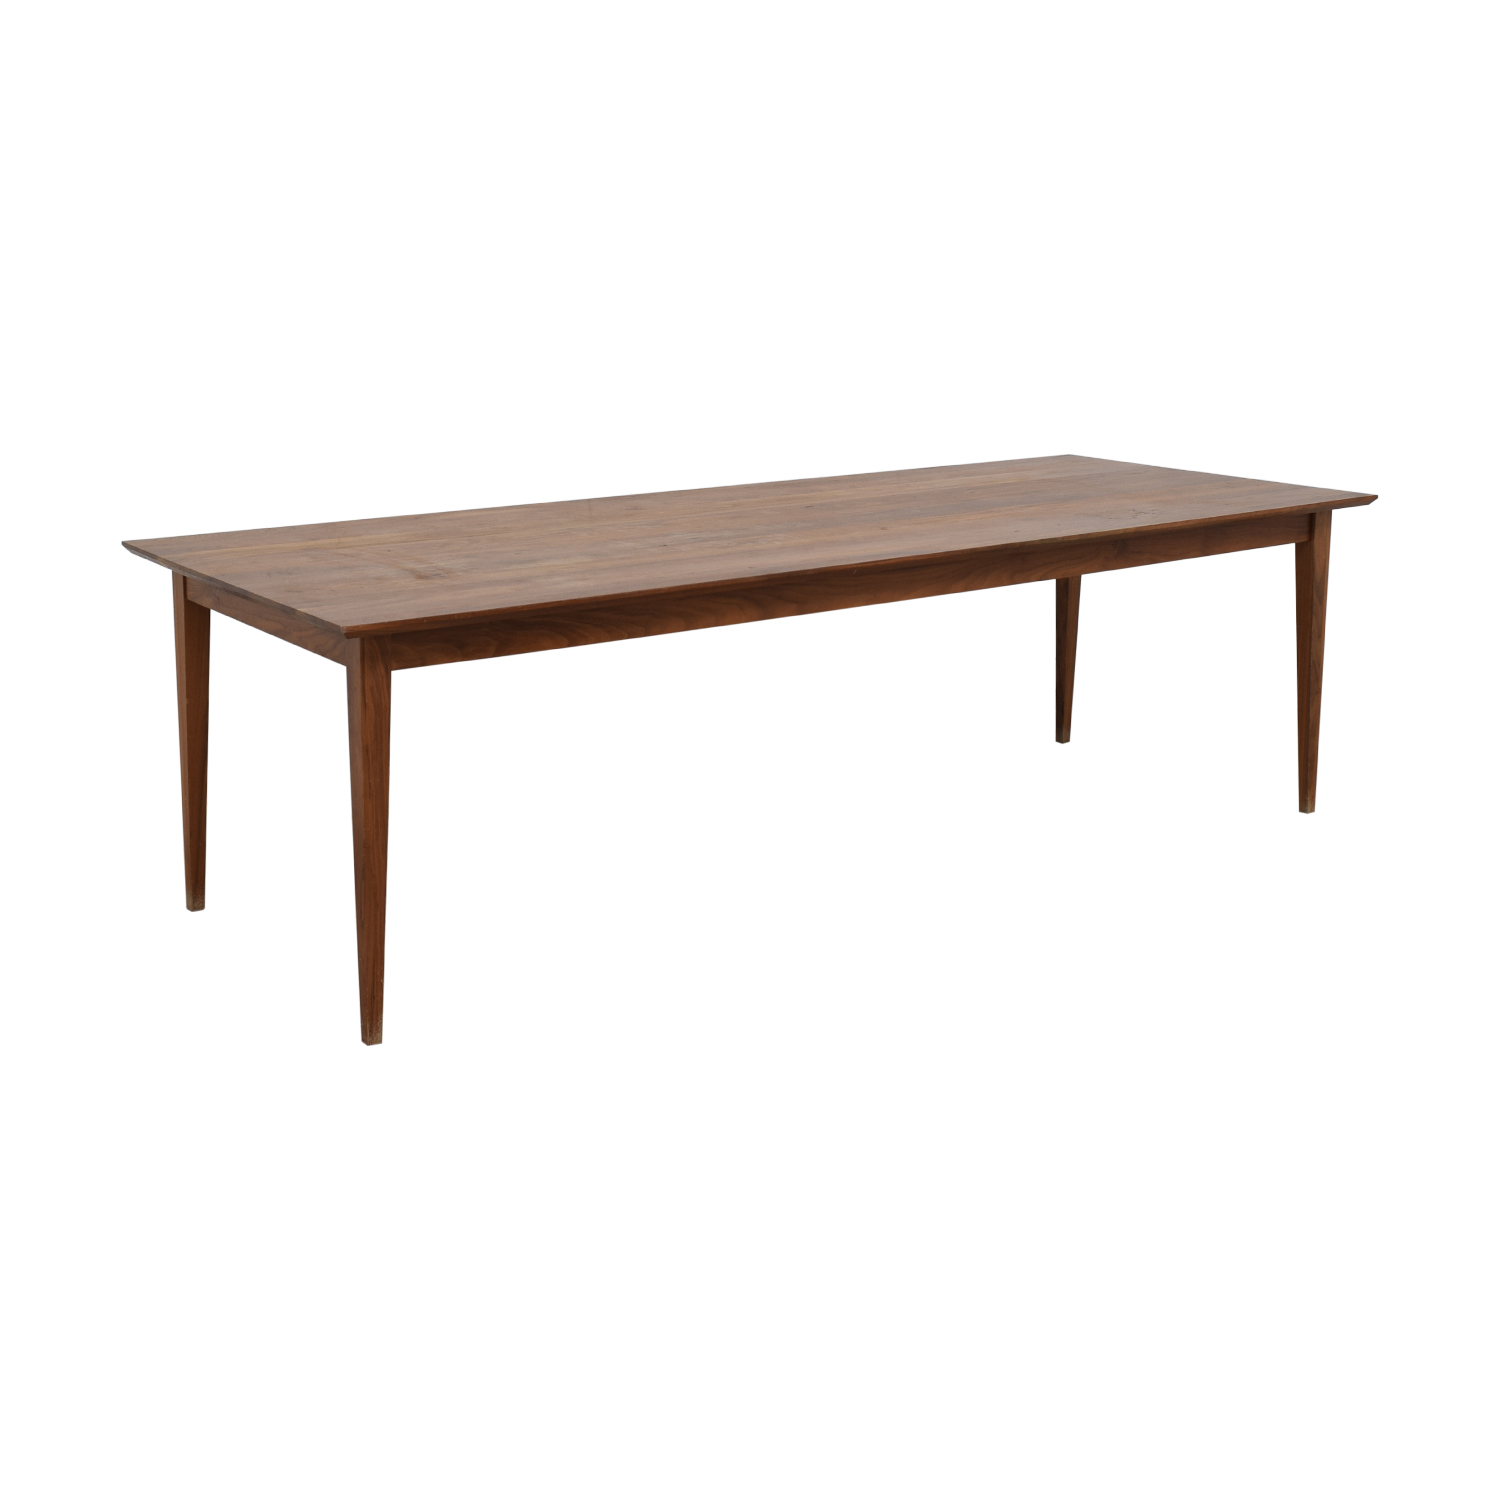 Room & Board Adams Extension Table / Tables